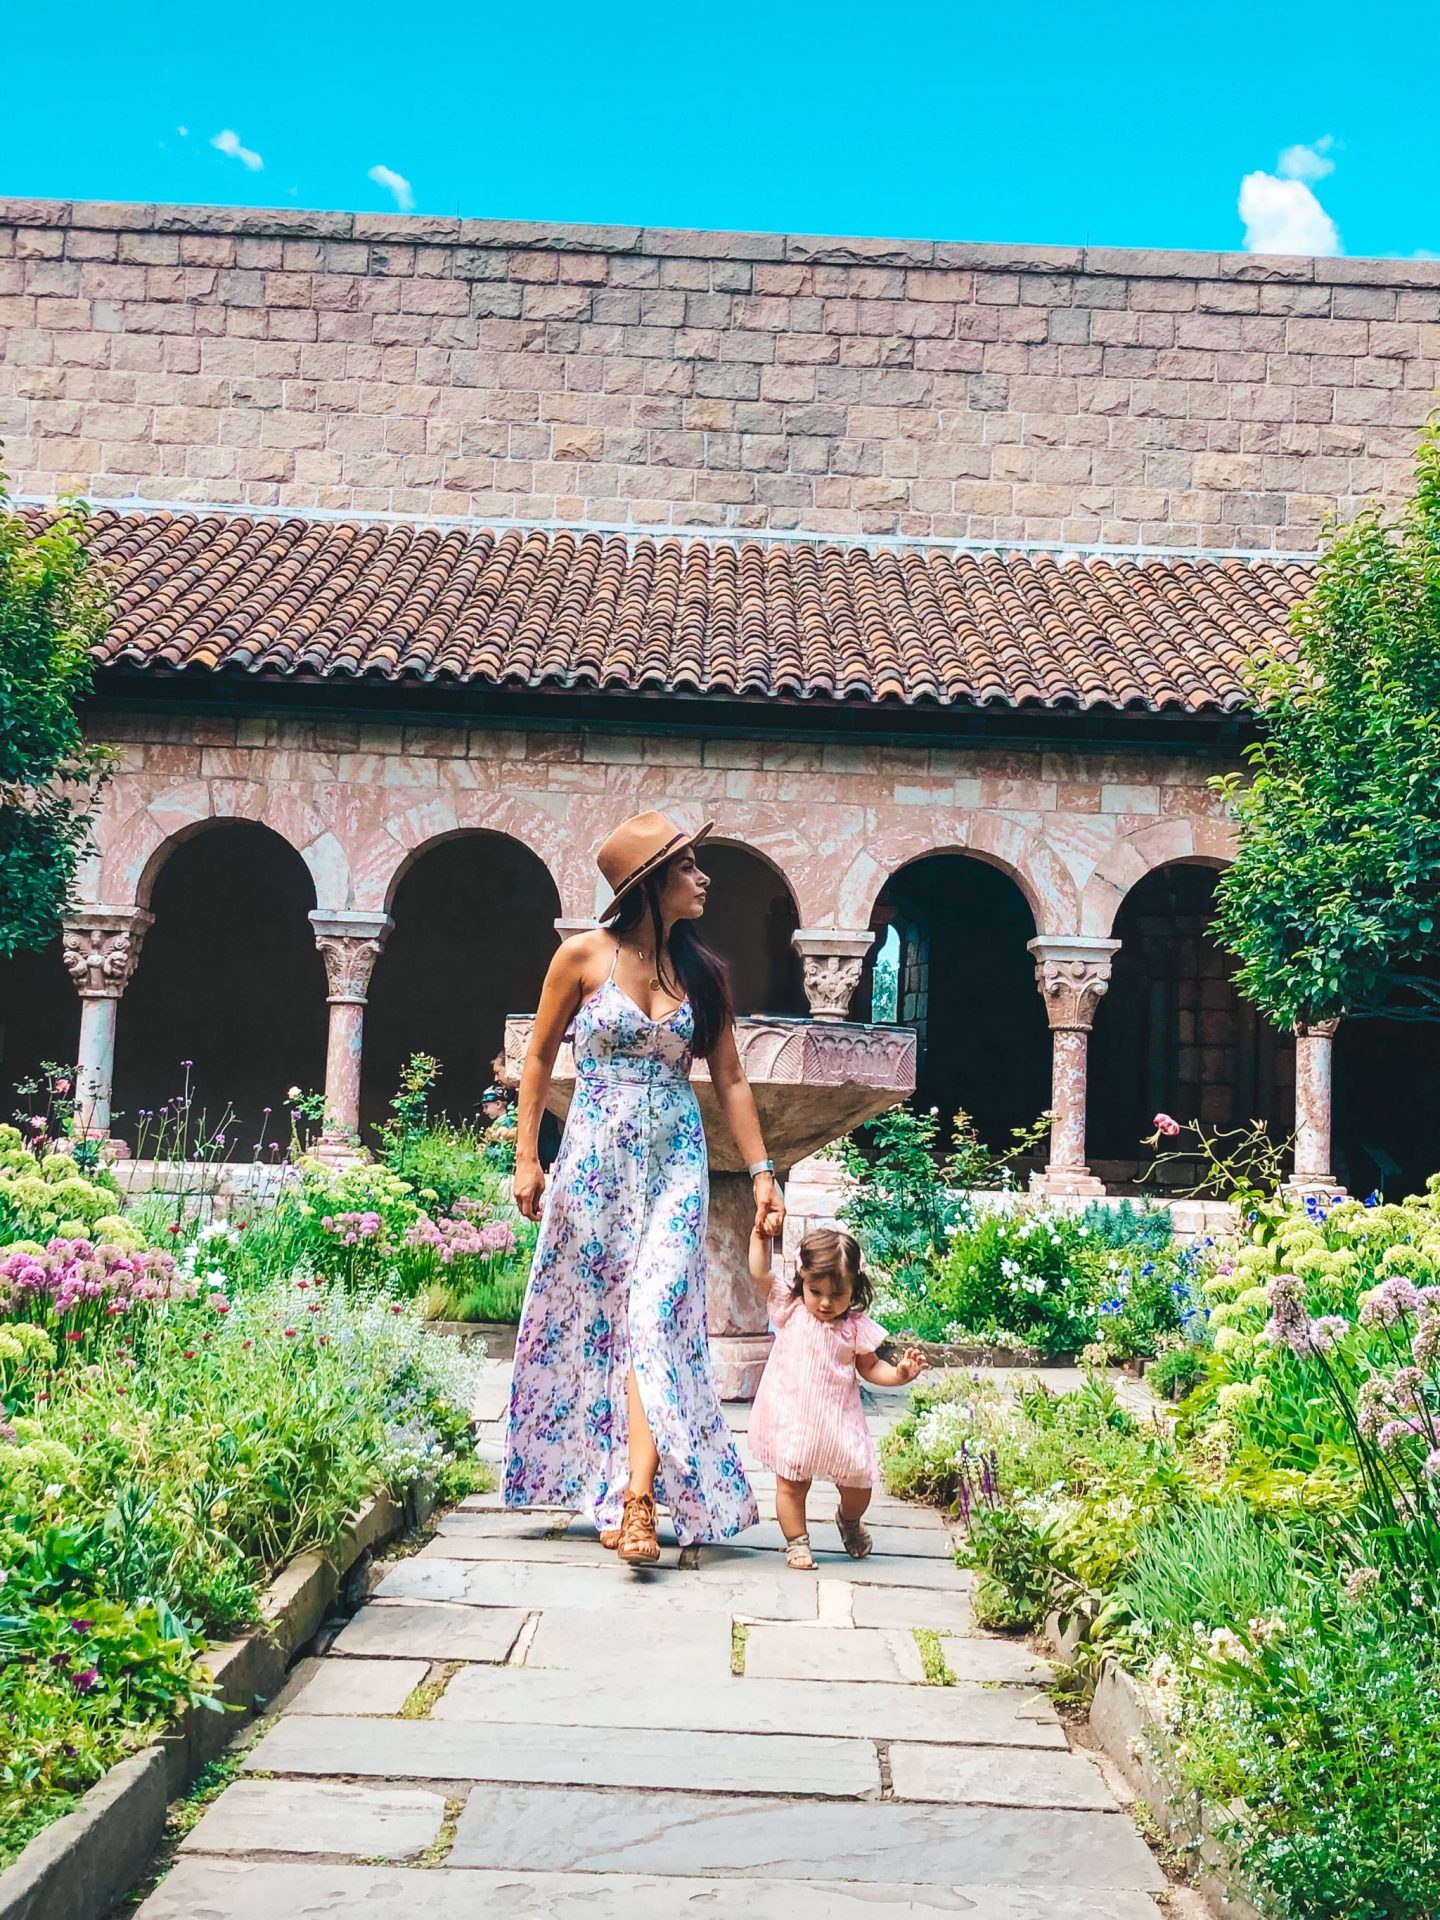 Cloisters: A Walk in Medieval Times